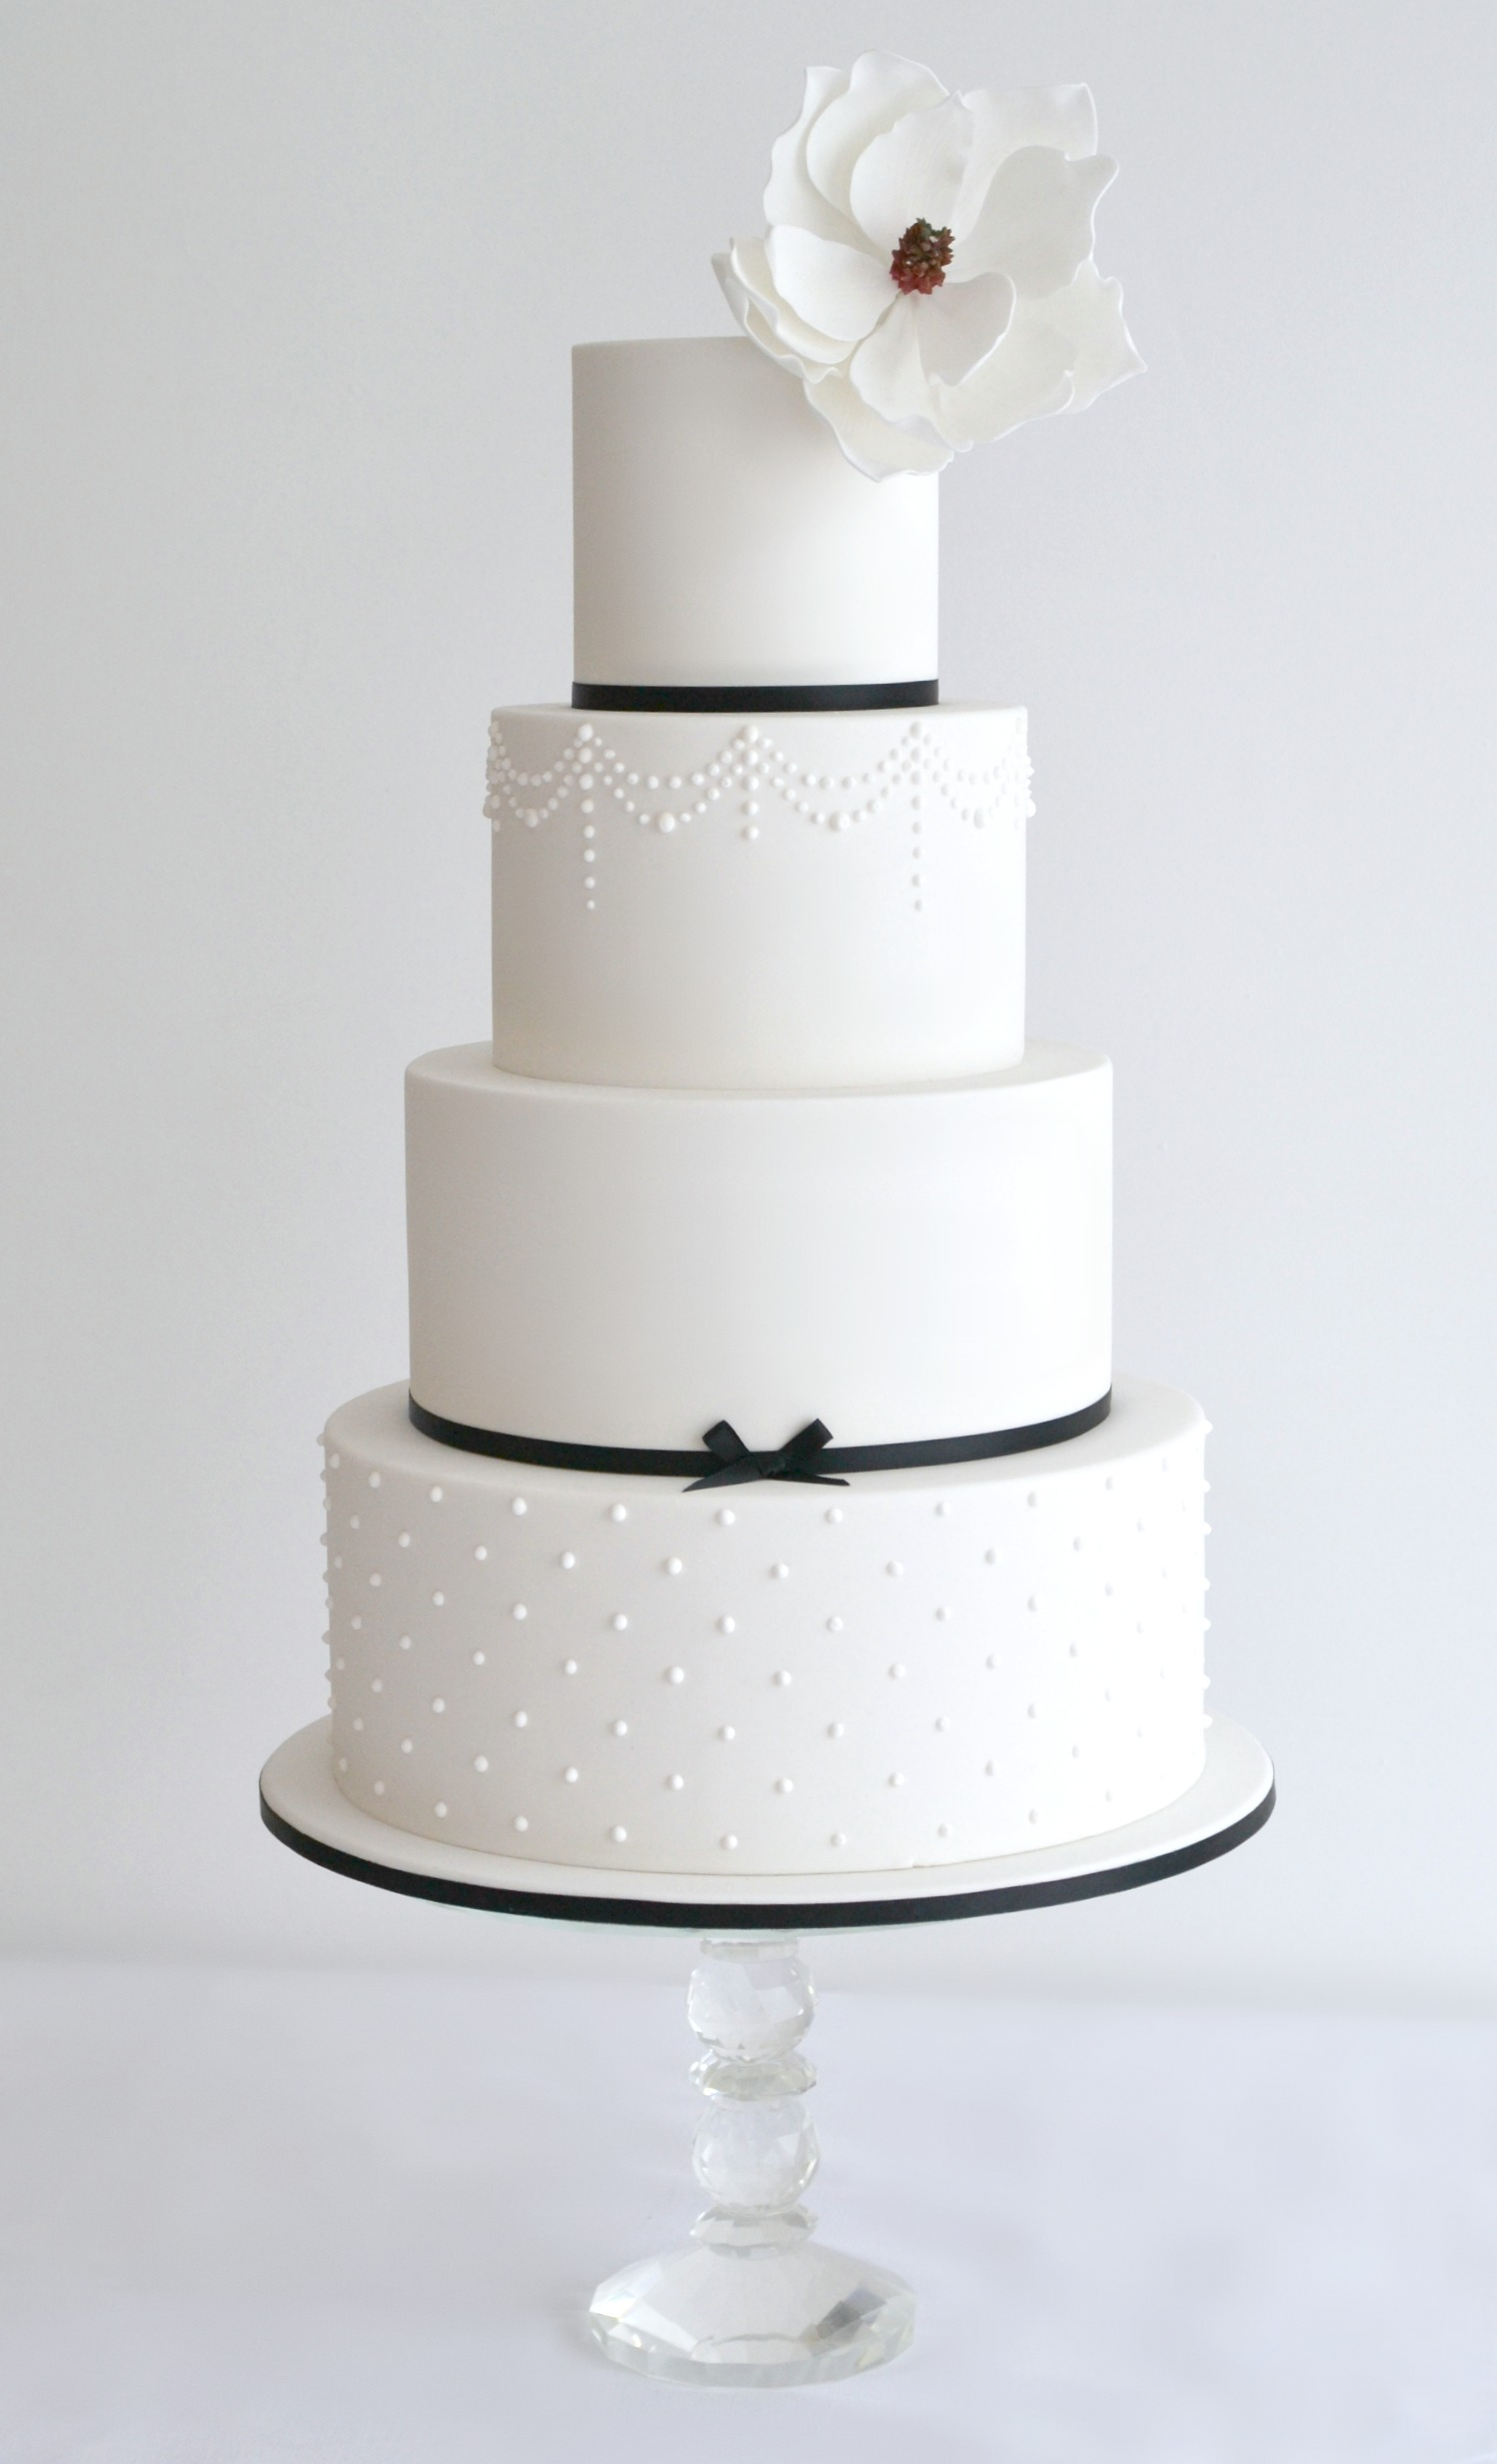 4 Tier Wedding cake with Magnolia